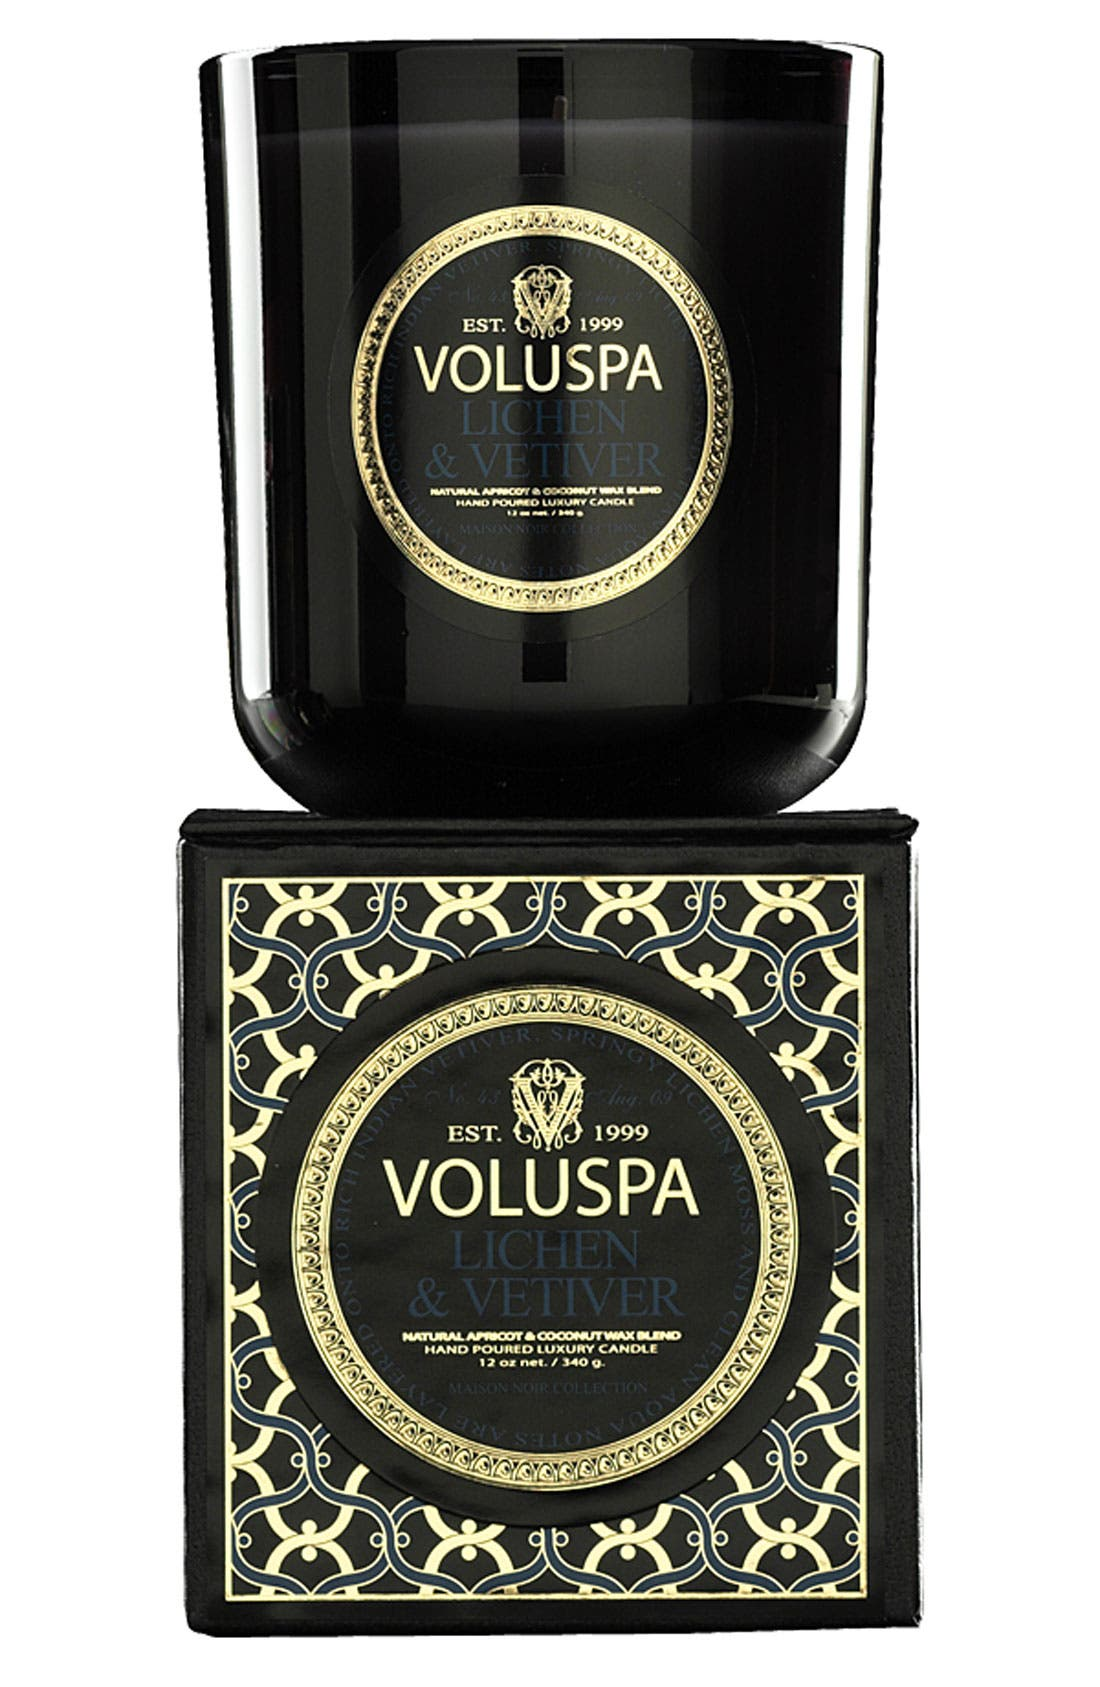 Alternate Image 1 Selected - Voluspa 'Maison Noir - Lichen & Vetiver' Scented Candle